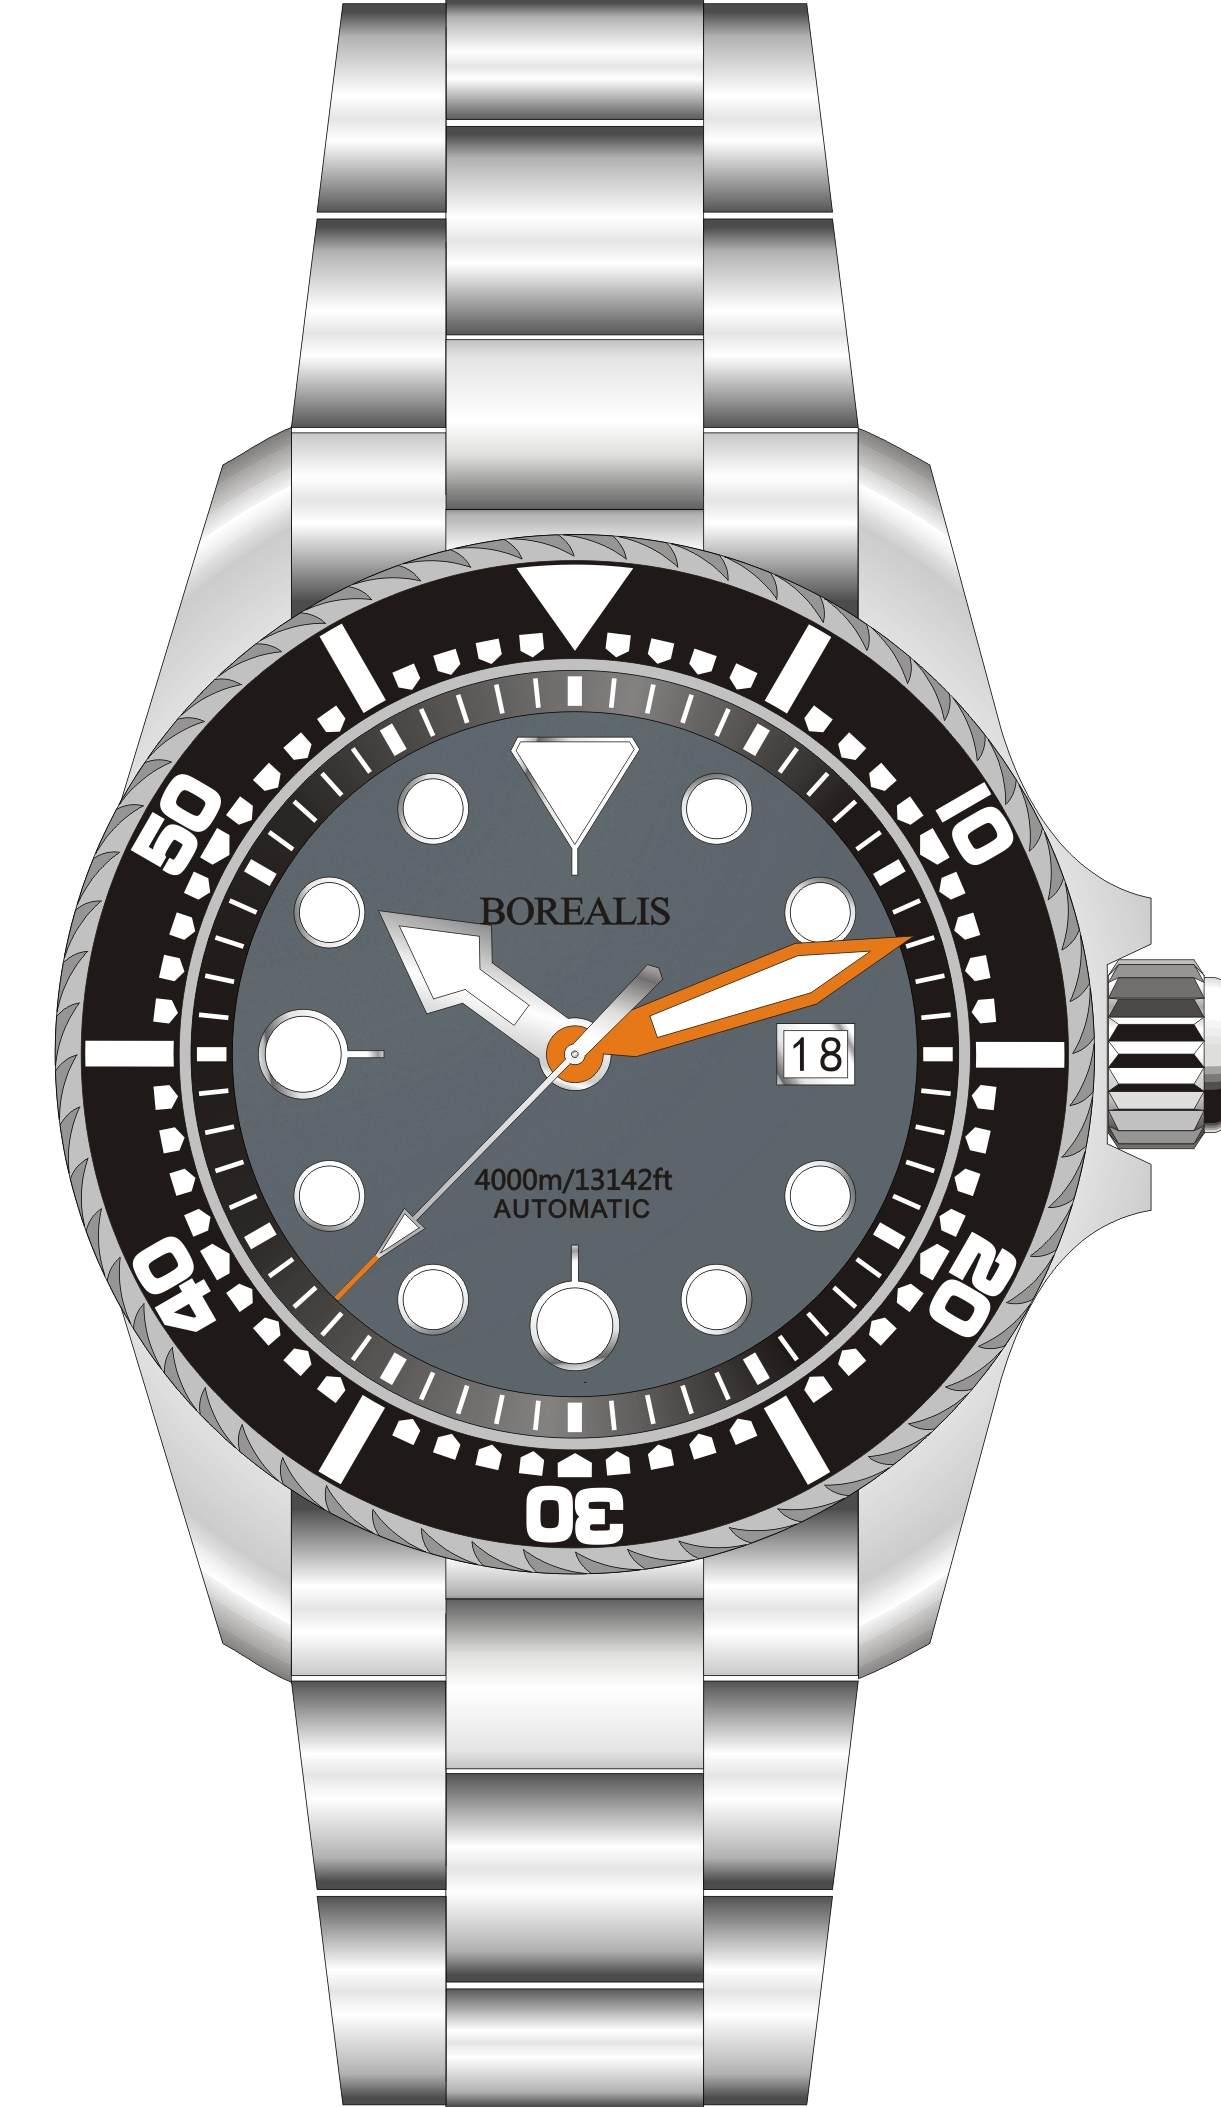 Borealis Seafarer II Stainless Steel Gray BGW9 Sapphire Turbine Style Grip Bezel 4000m Miyota 9015 Automatic Diver Watch BSFIIGRAYBGW9